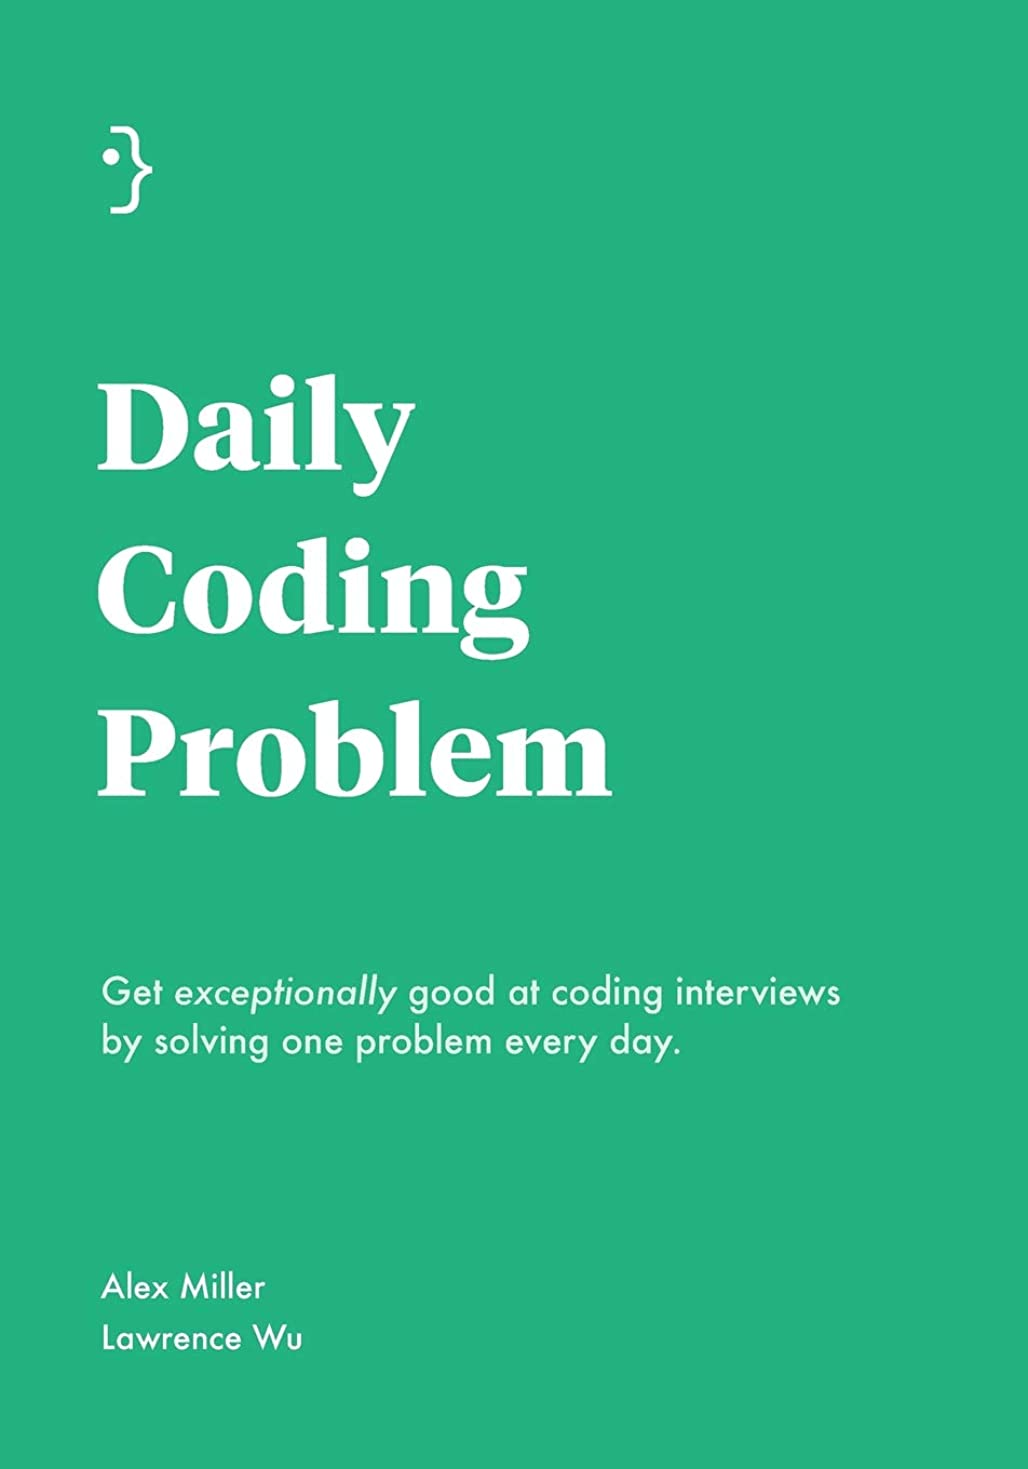 バング接続された一晩Daily Coding Problem: Get exceptionally good at coding interviews by solving one problem every day